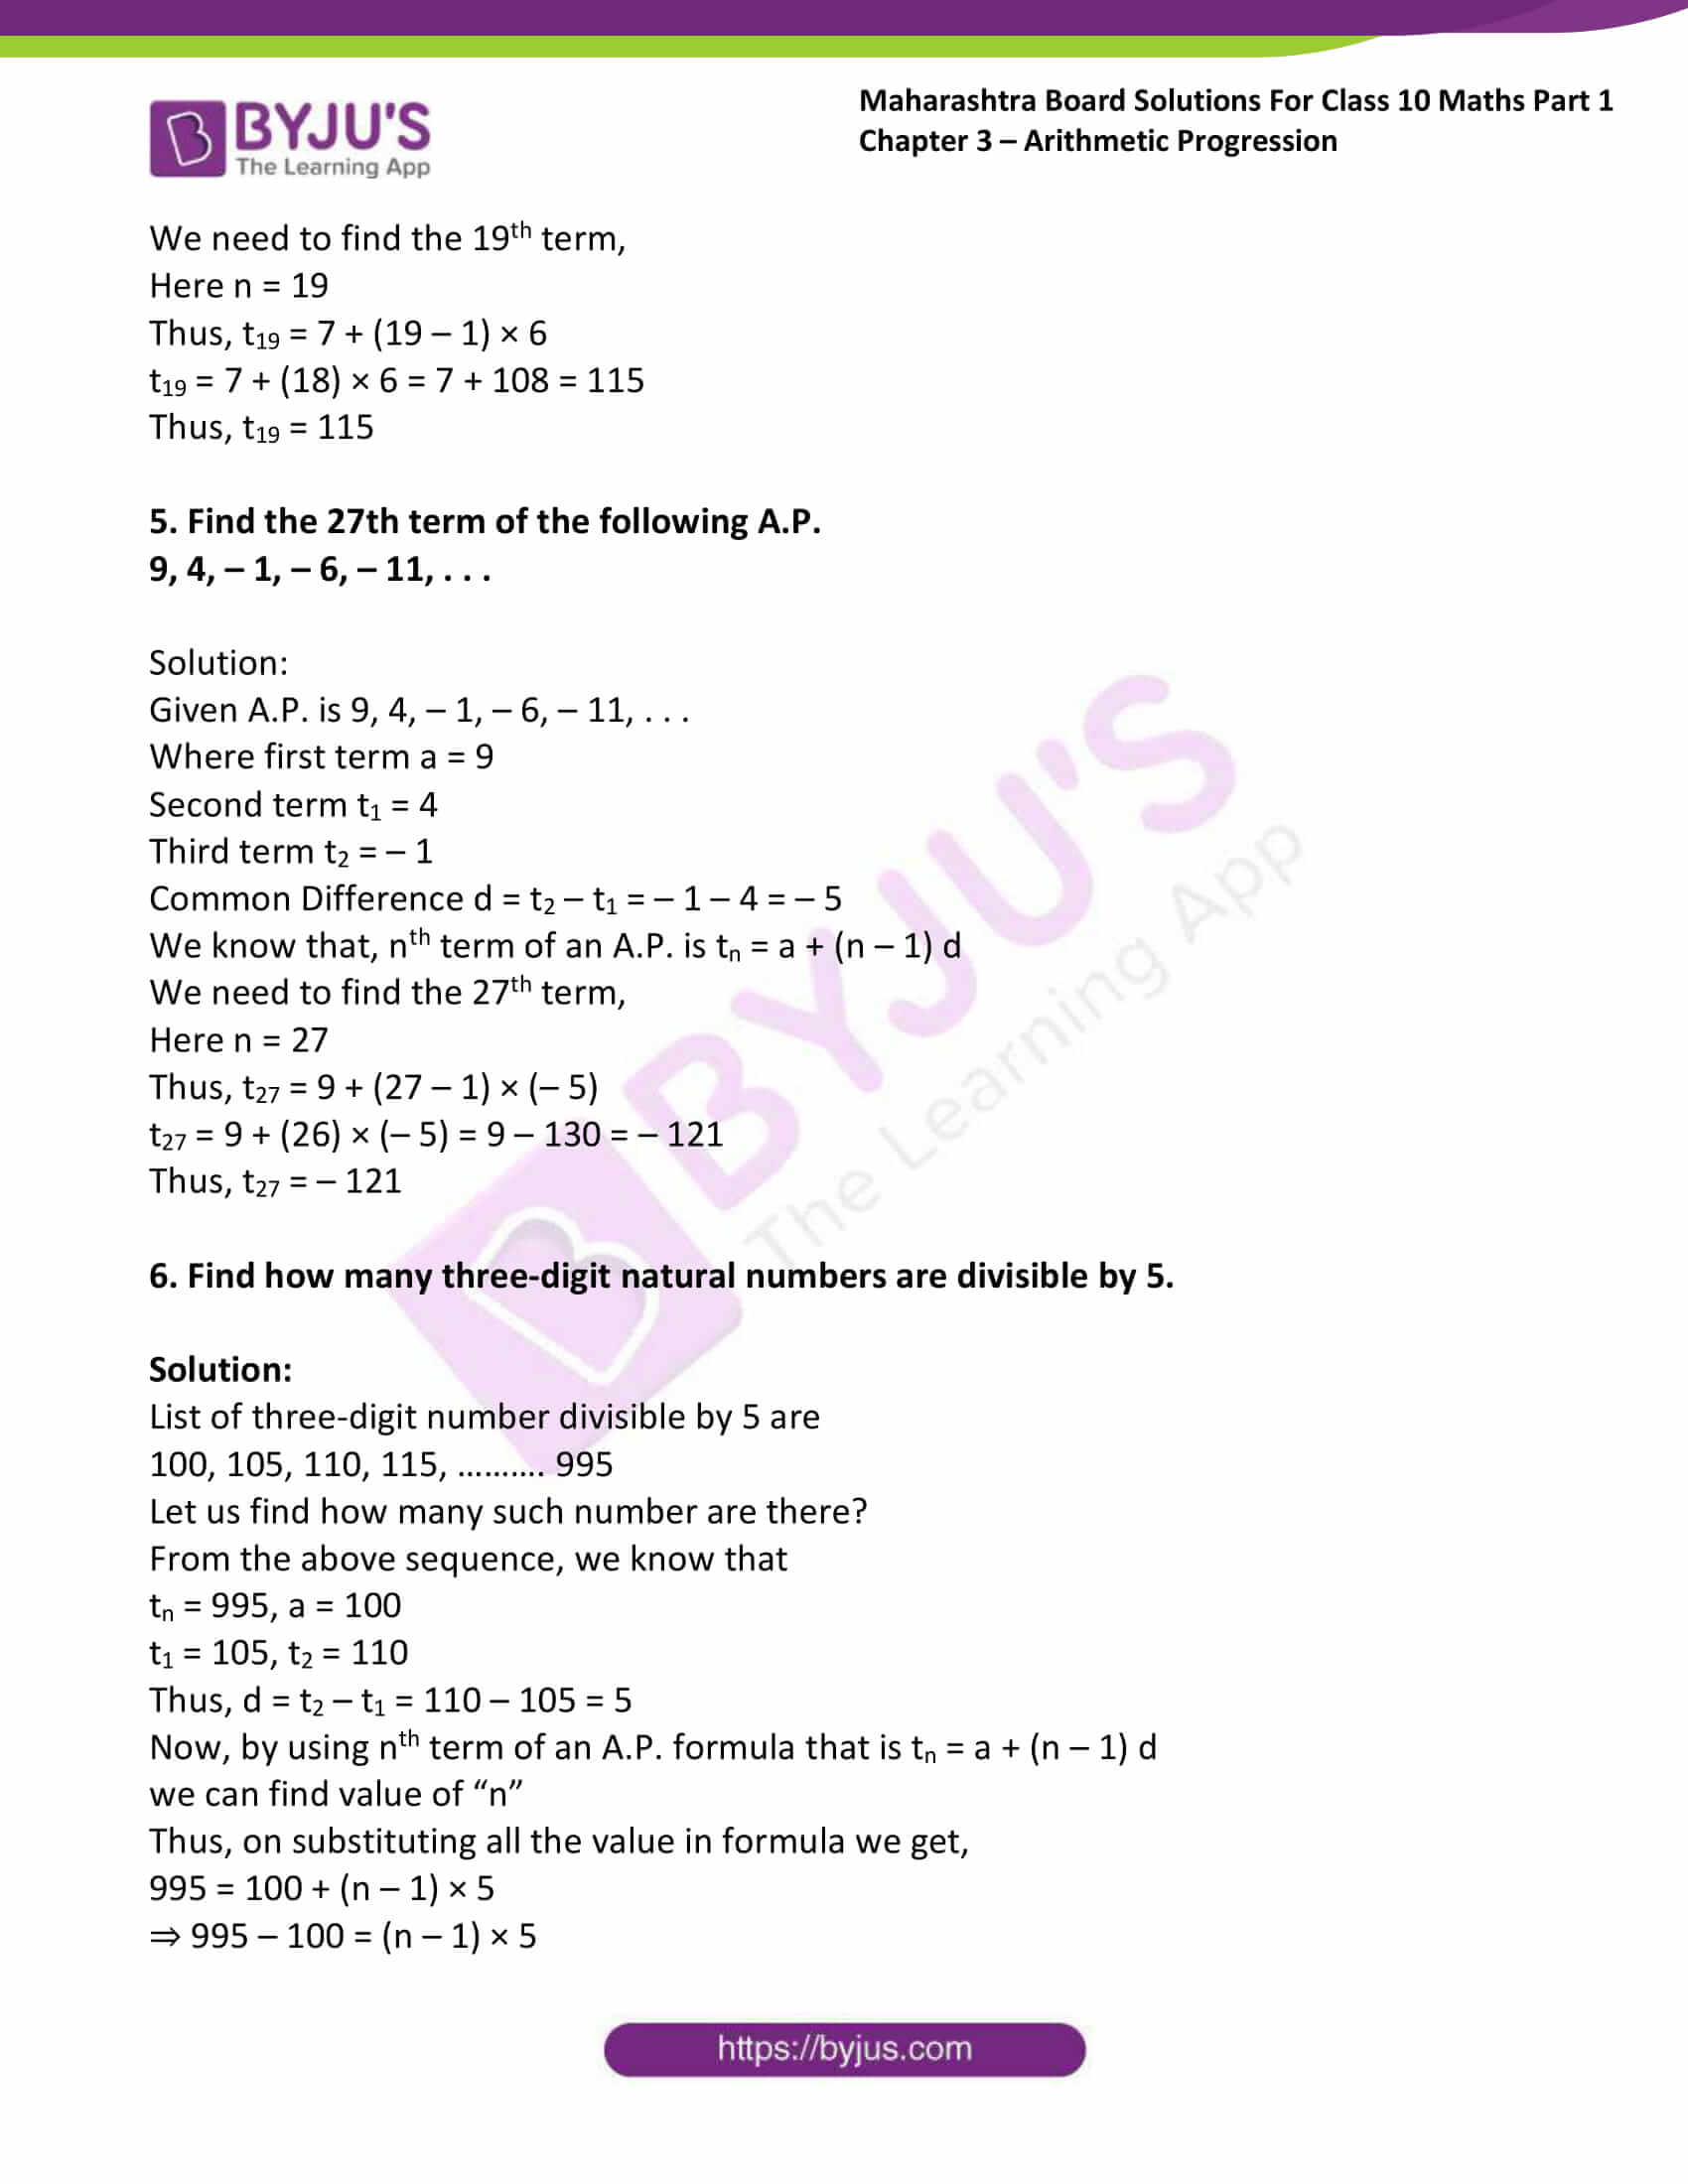 msbshse solutions class 10 maths part 1 chapter 3 11